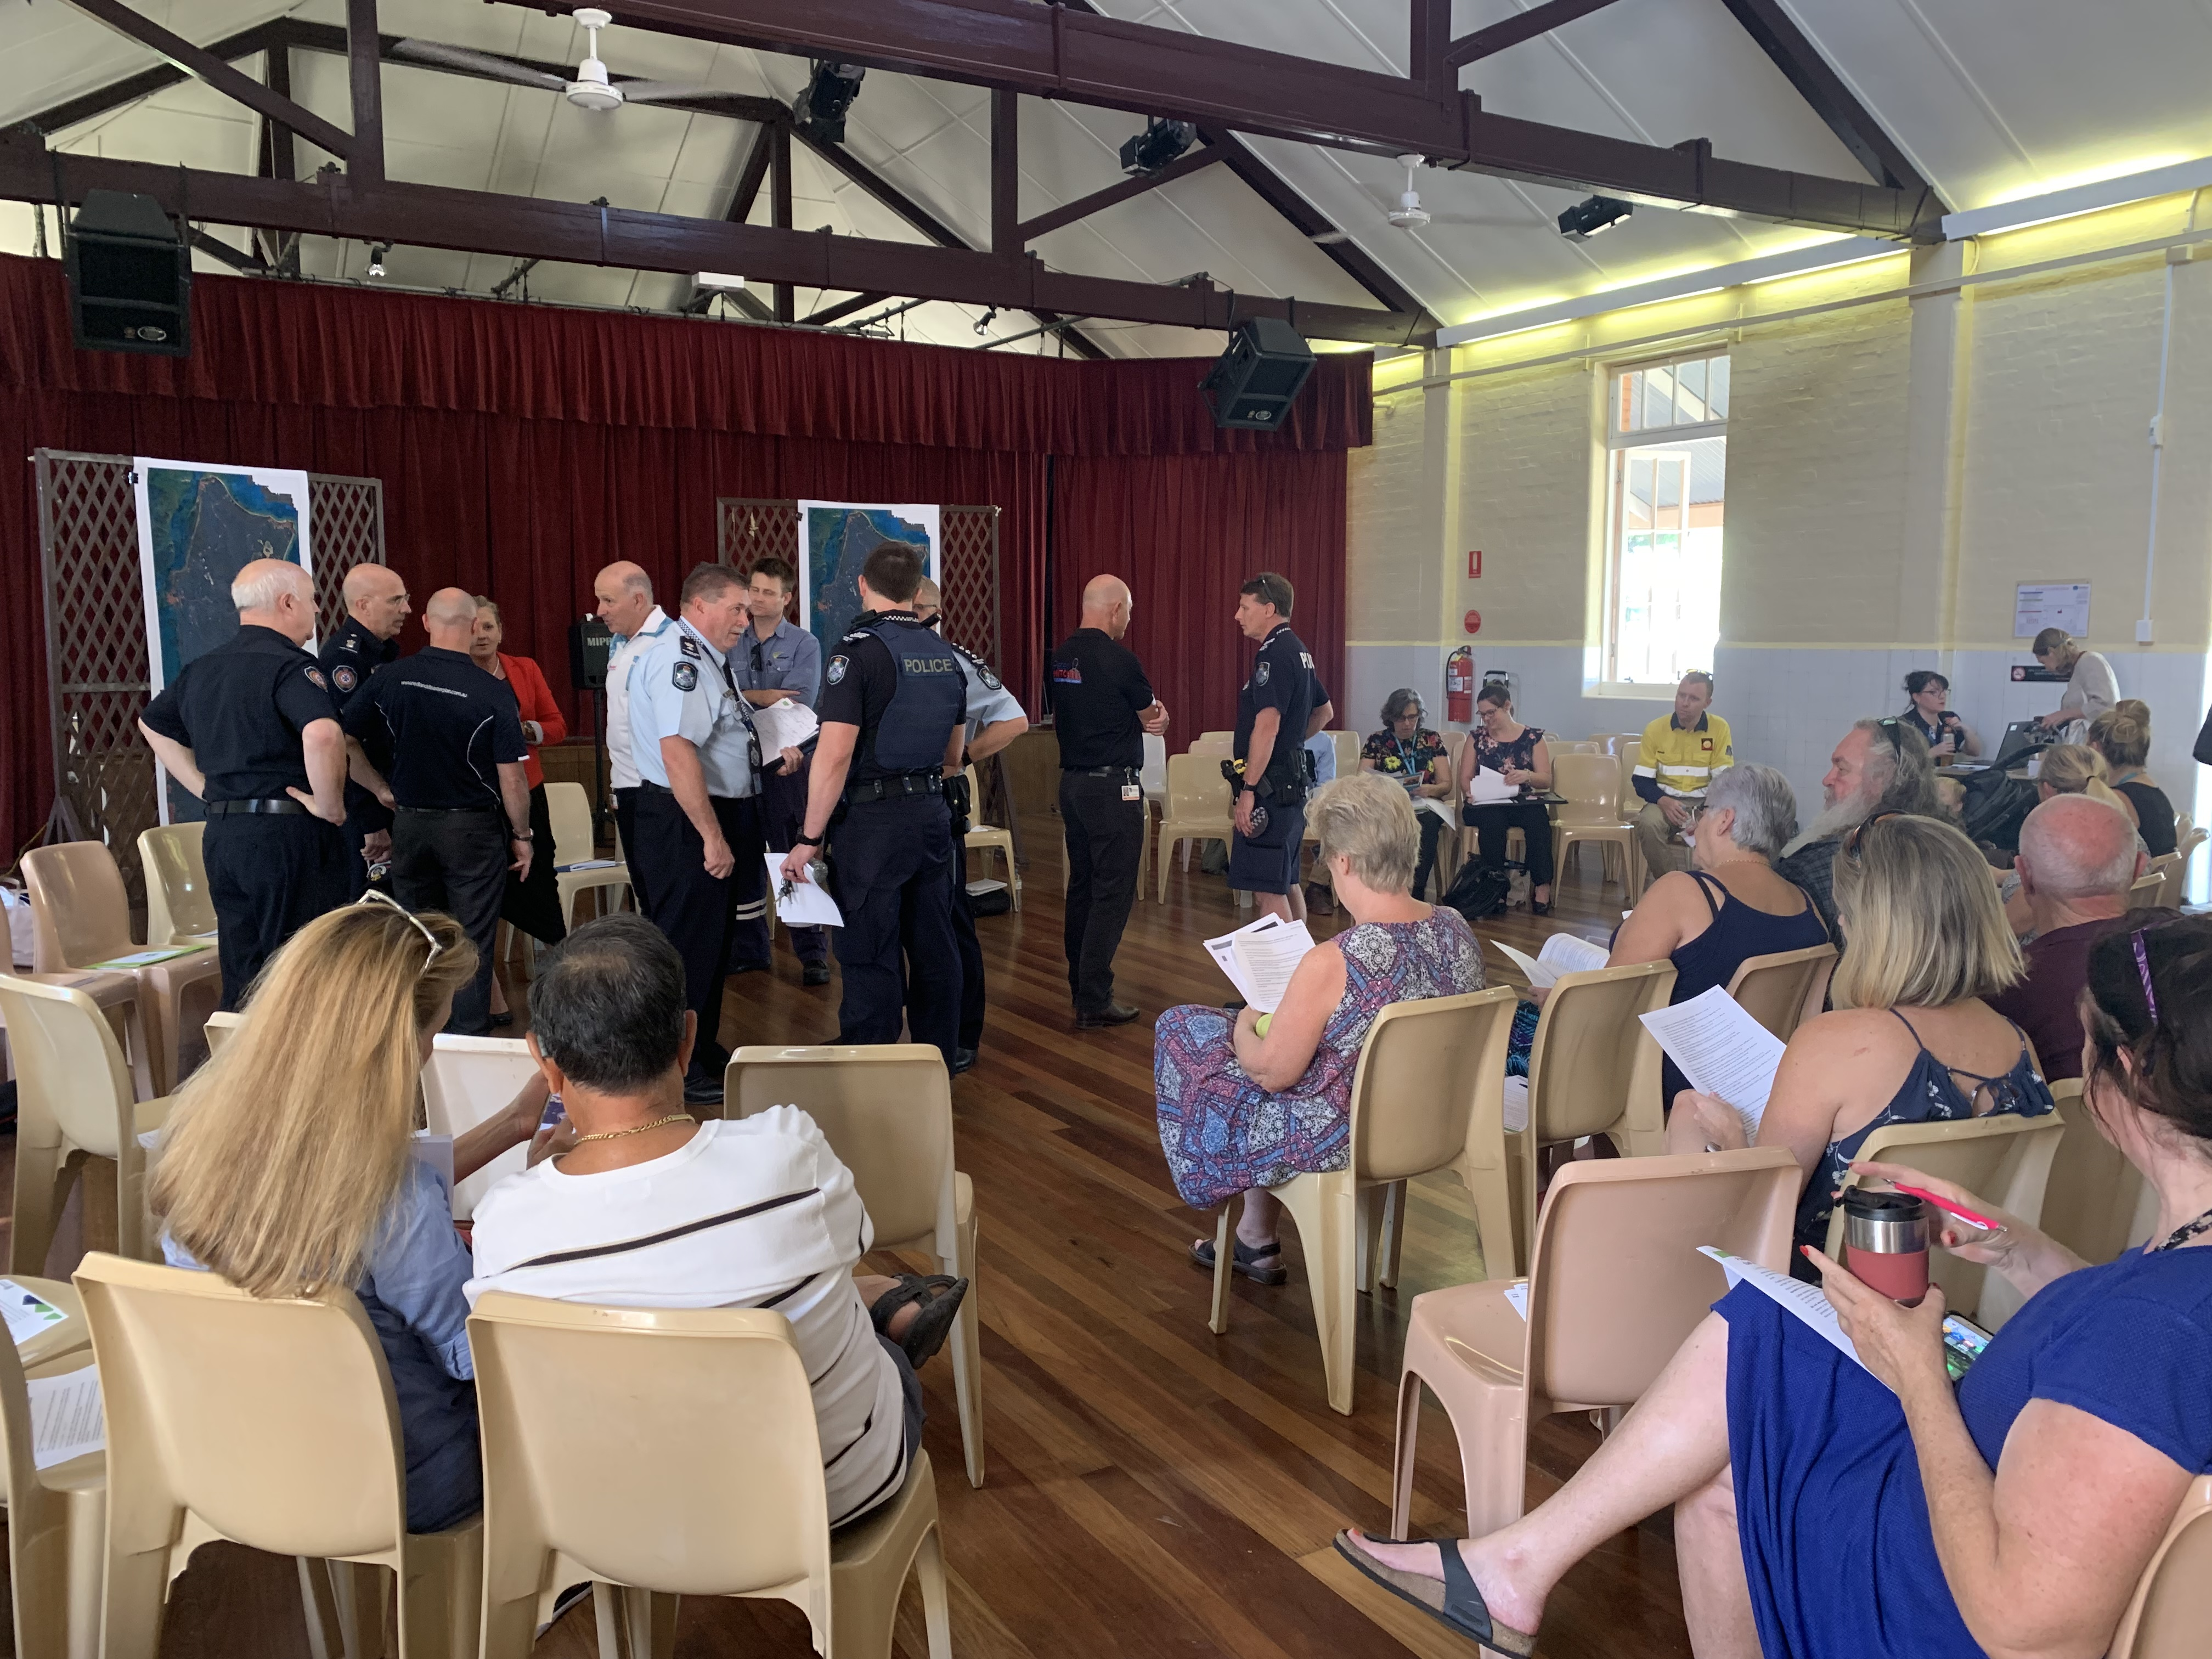 More than 60 residents attended the community meeting at Dunwich this afternoon to find out the latest information about the fire on North Stradbroke Island.